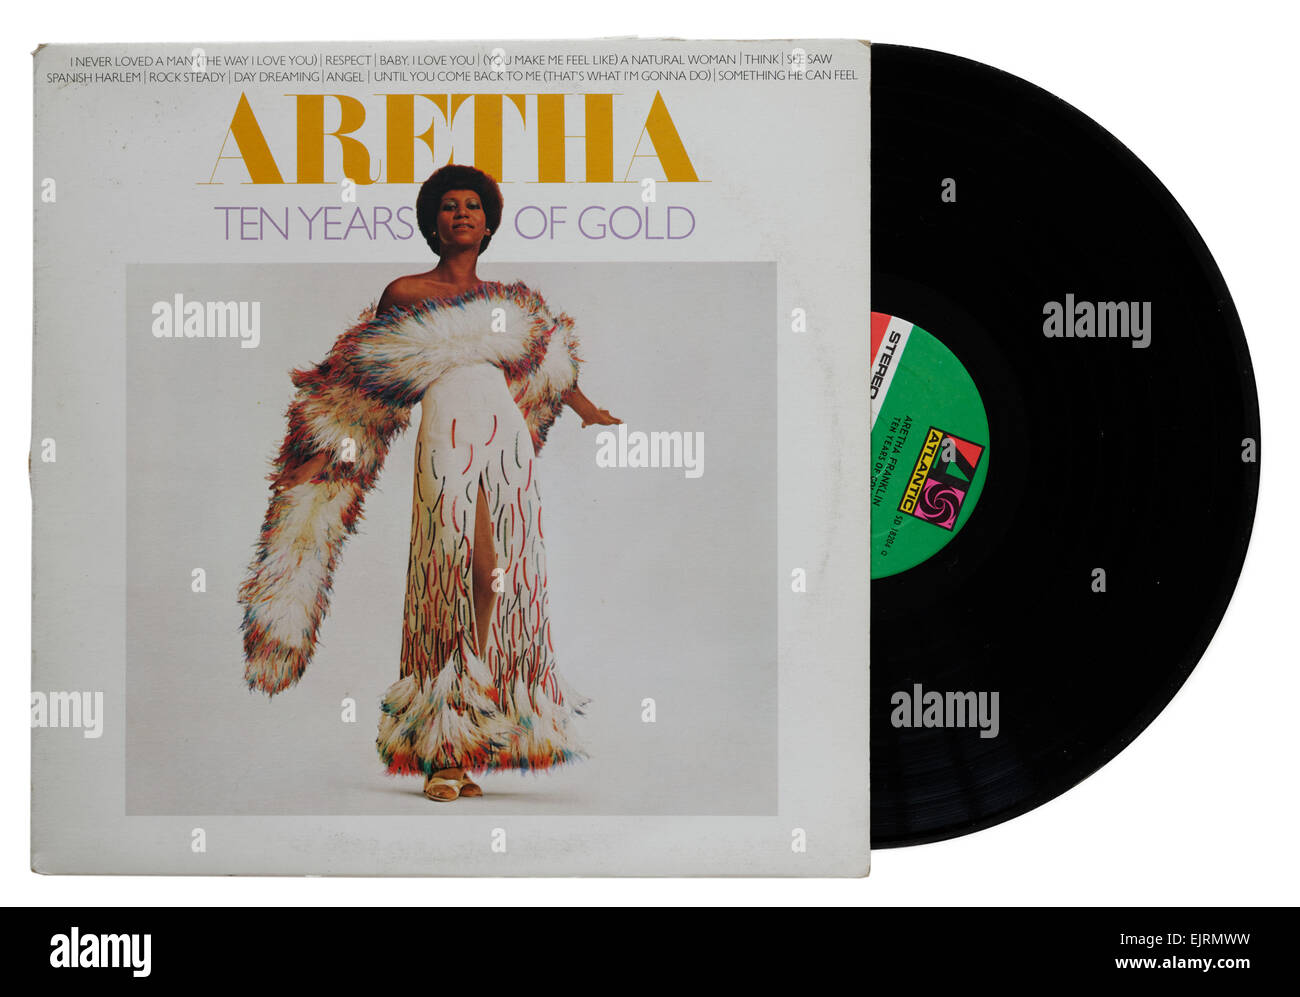 Aretha Franklin Ten Years of Gold album - Stock Image